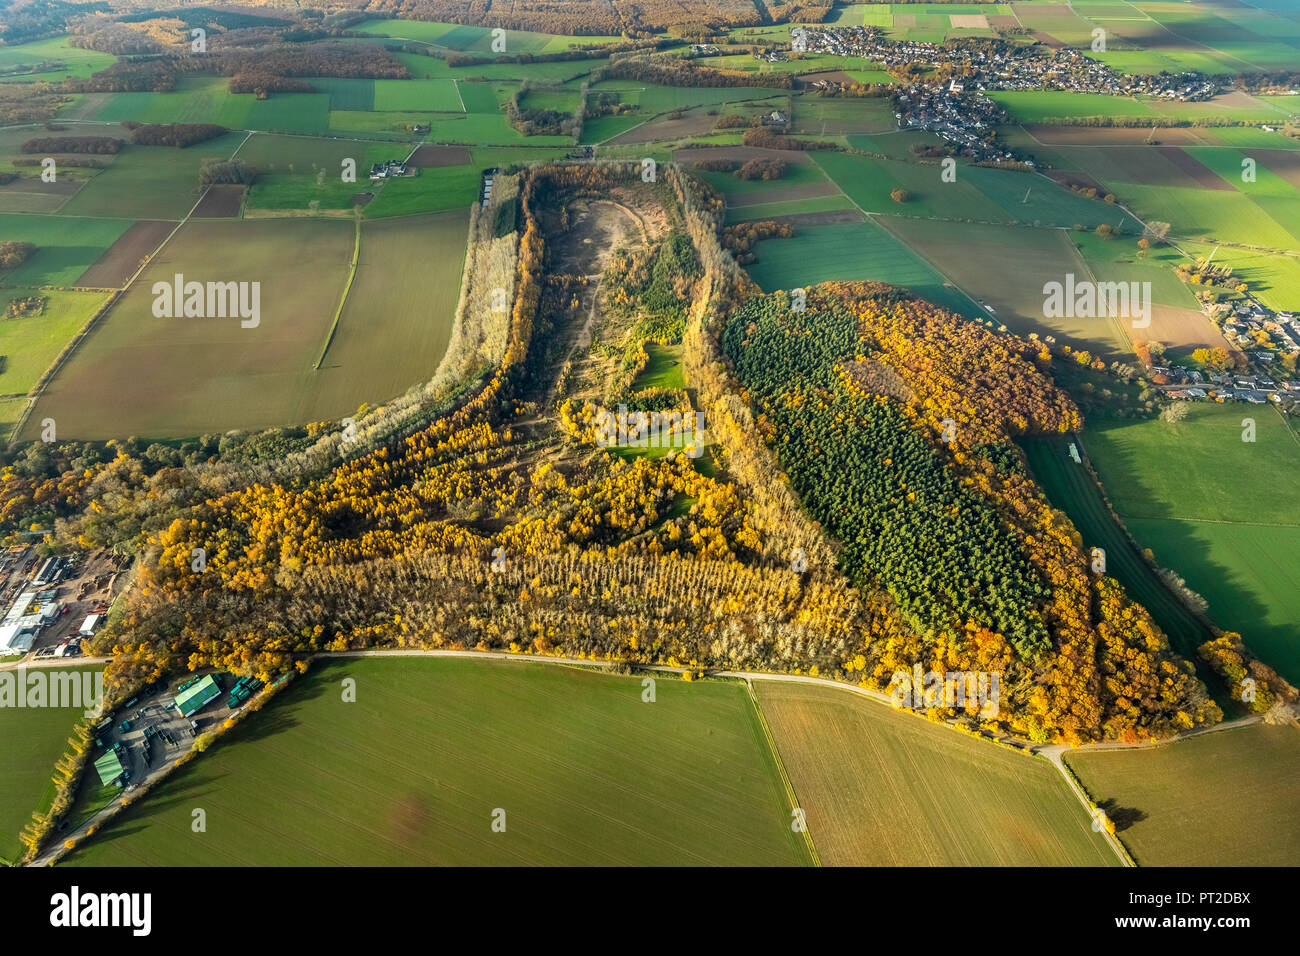 Spoil tip Beythal, Hürtgenwald, nature reserve, Düren in the district Berzbuir-Kufferath, former settling tank of ore processing, leachate containing heavy metals, Association for land recycling and remediation AVV, Düren, Rhineland, North Rhine-Westphalia, Germany - Stock Image